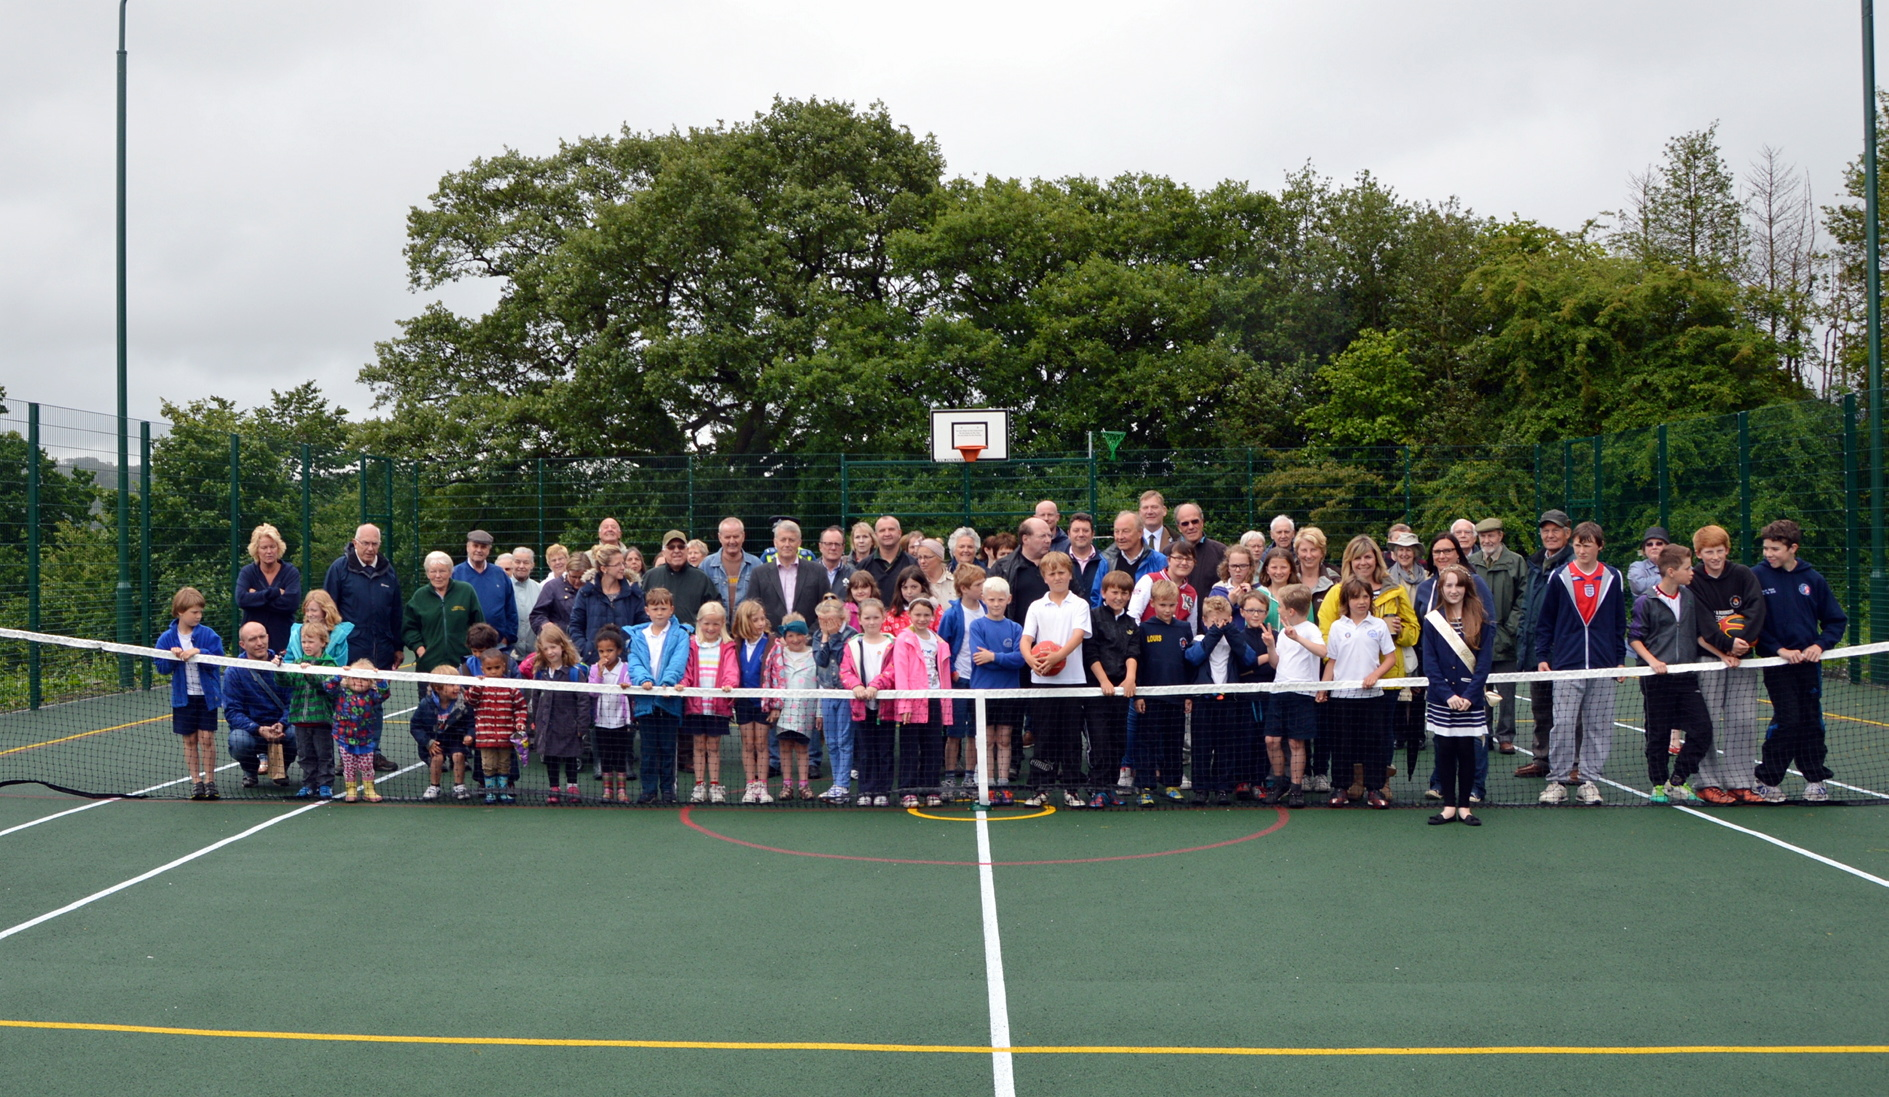 Addingham villagers at the official opening of the new games area